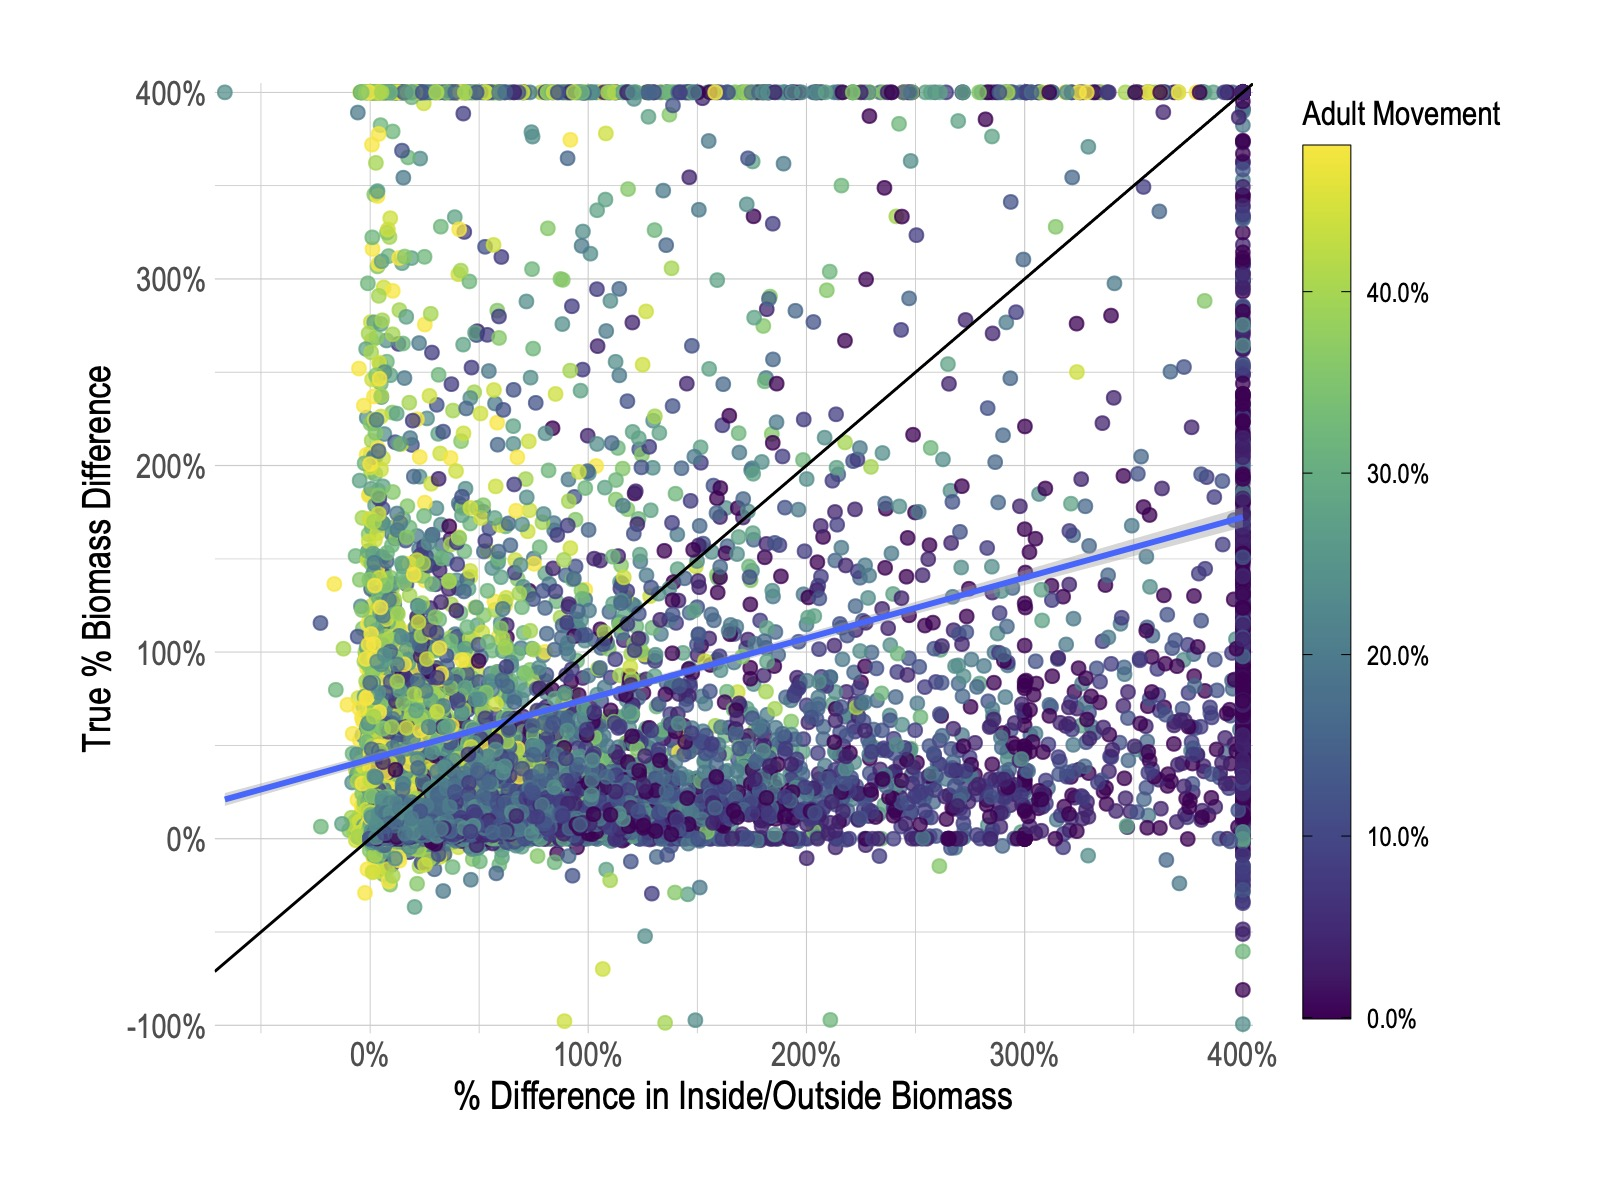 True effect of MPAs on total population biomass (vertical axis) plotted against ratio of biomass inside MPAs relative to outside. Each point is a simulated fishery, and color of the points corresponds to the movement rate of adult fish.